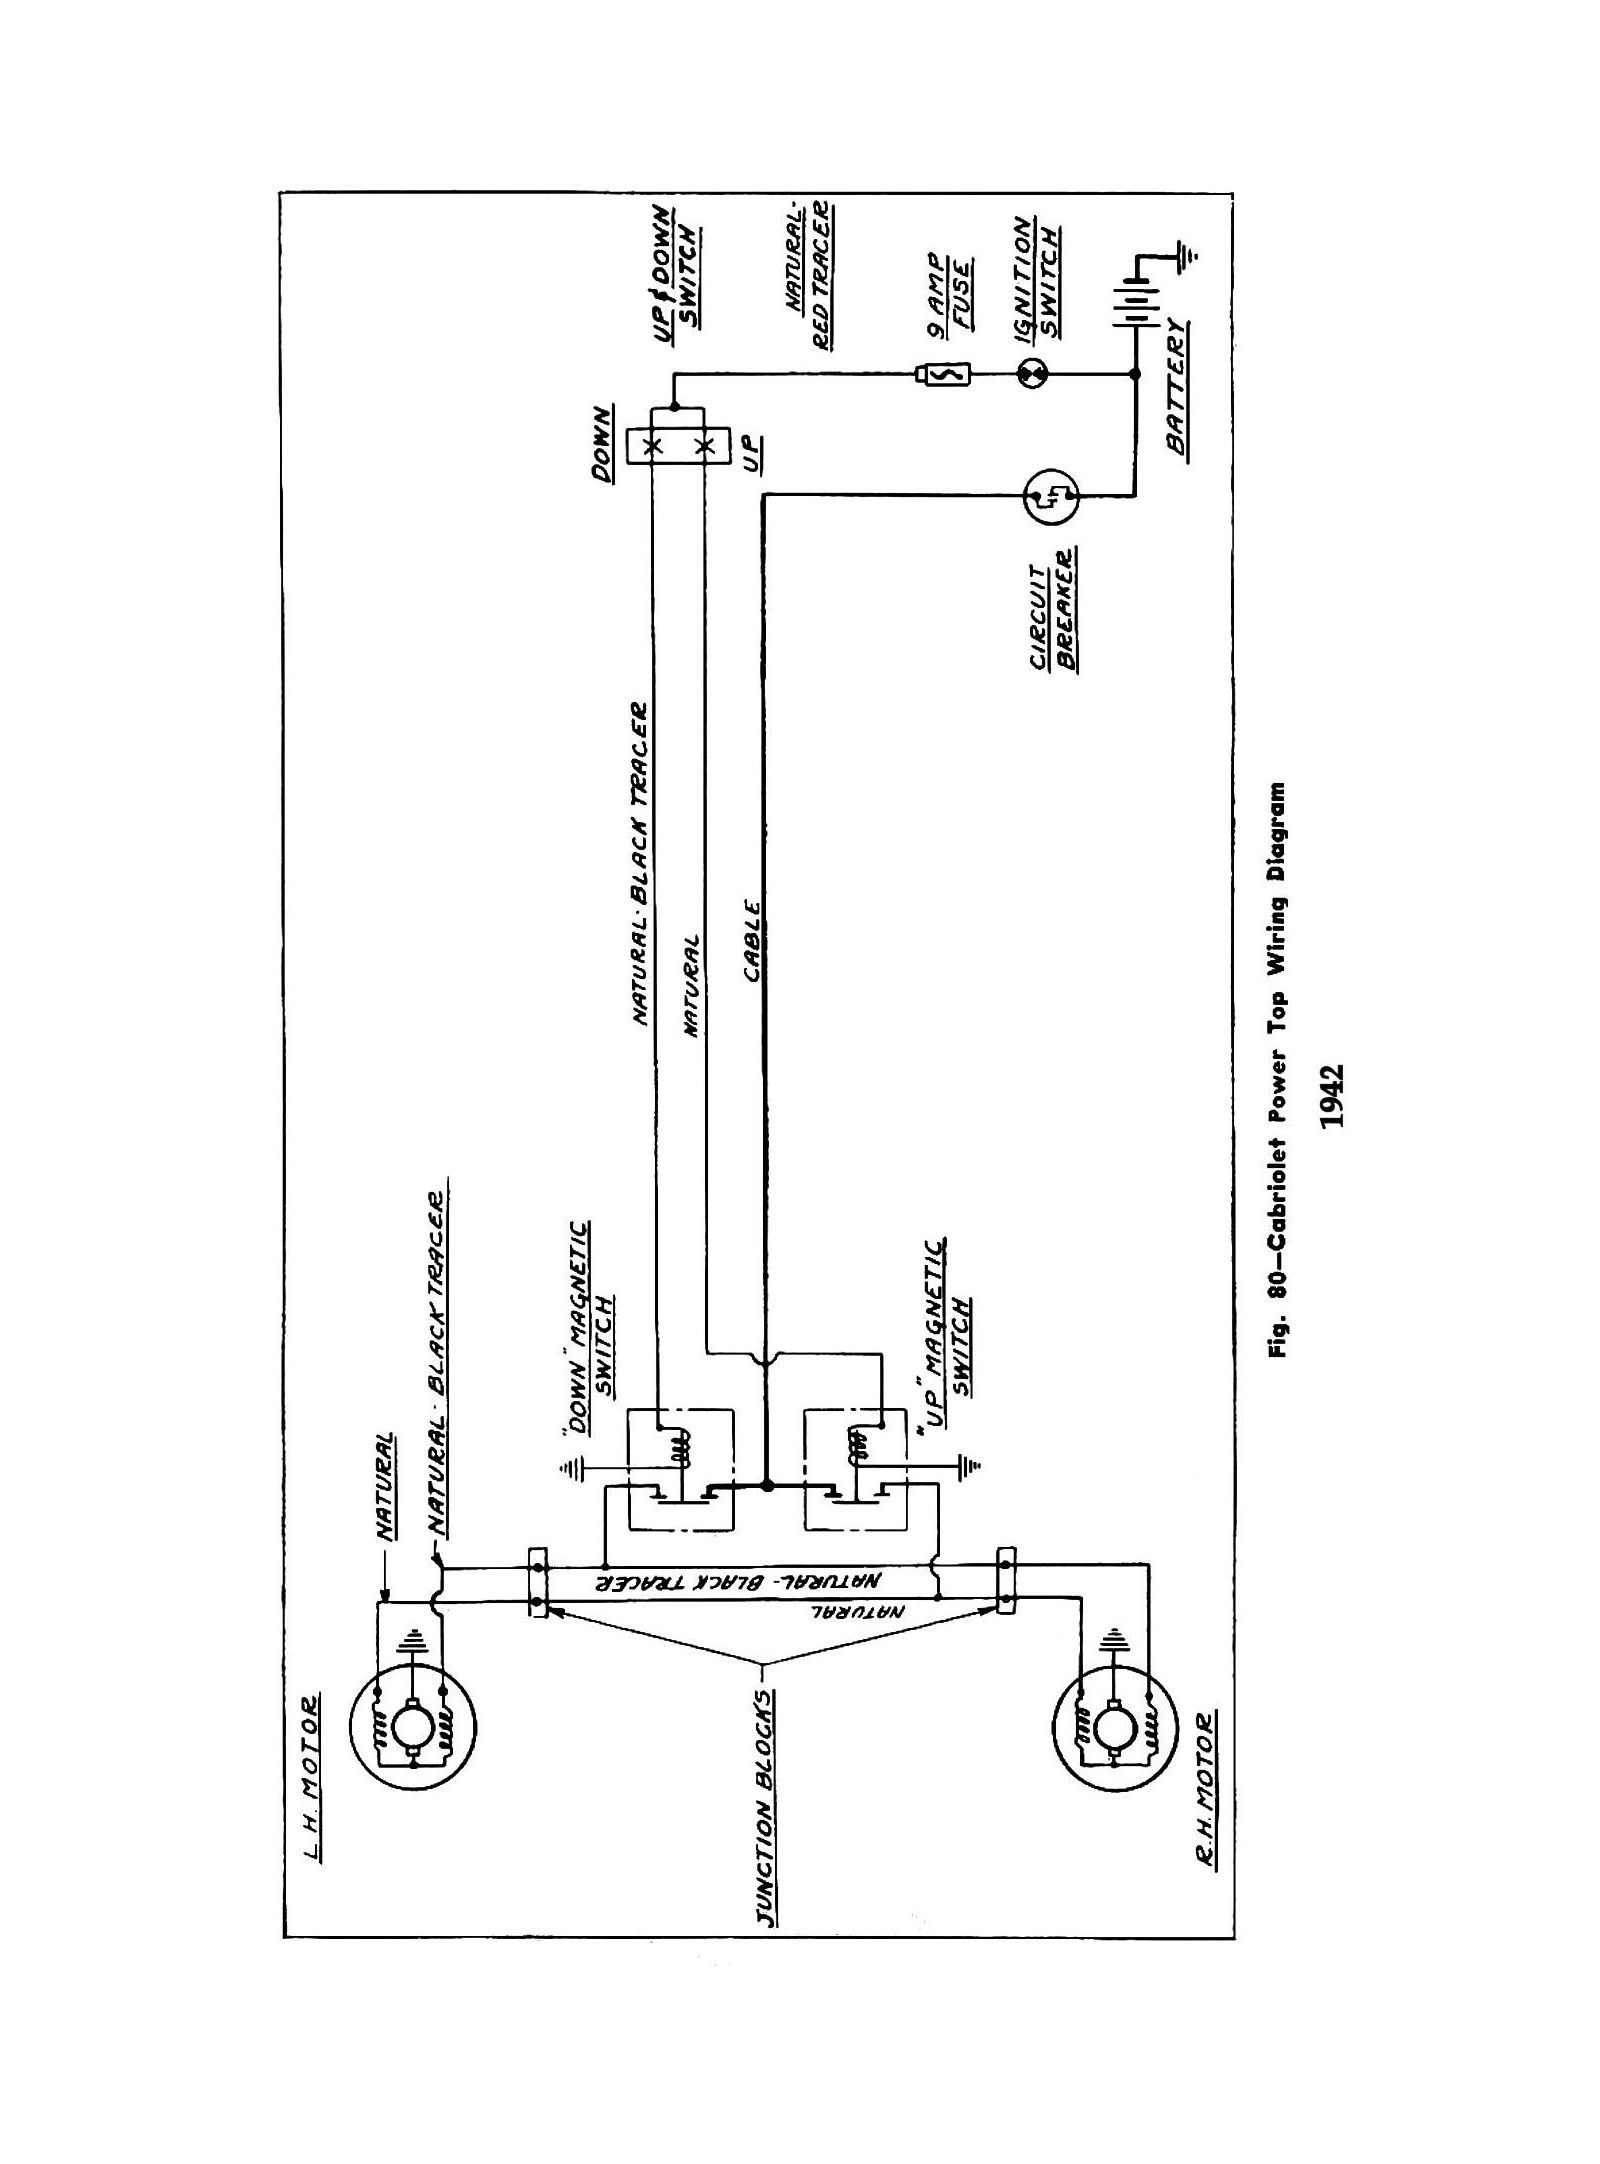 Chevy Wiring Diagrams Basic Electrical On 1942 Truck Cabriolet Power Top